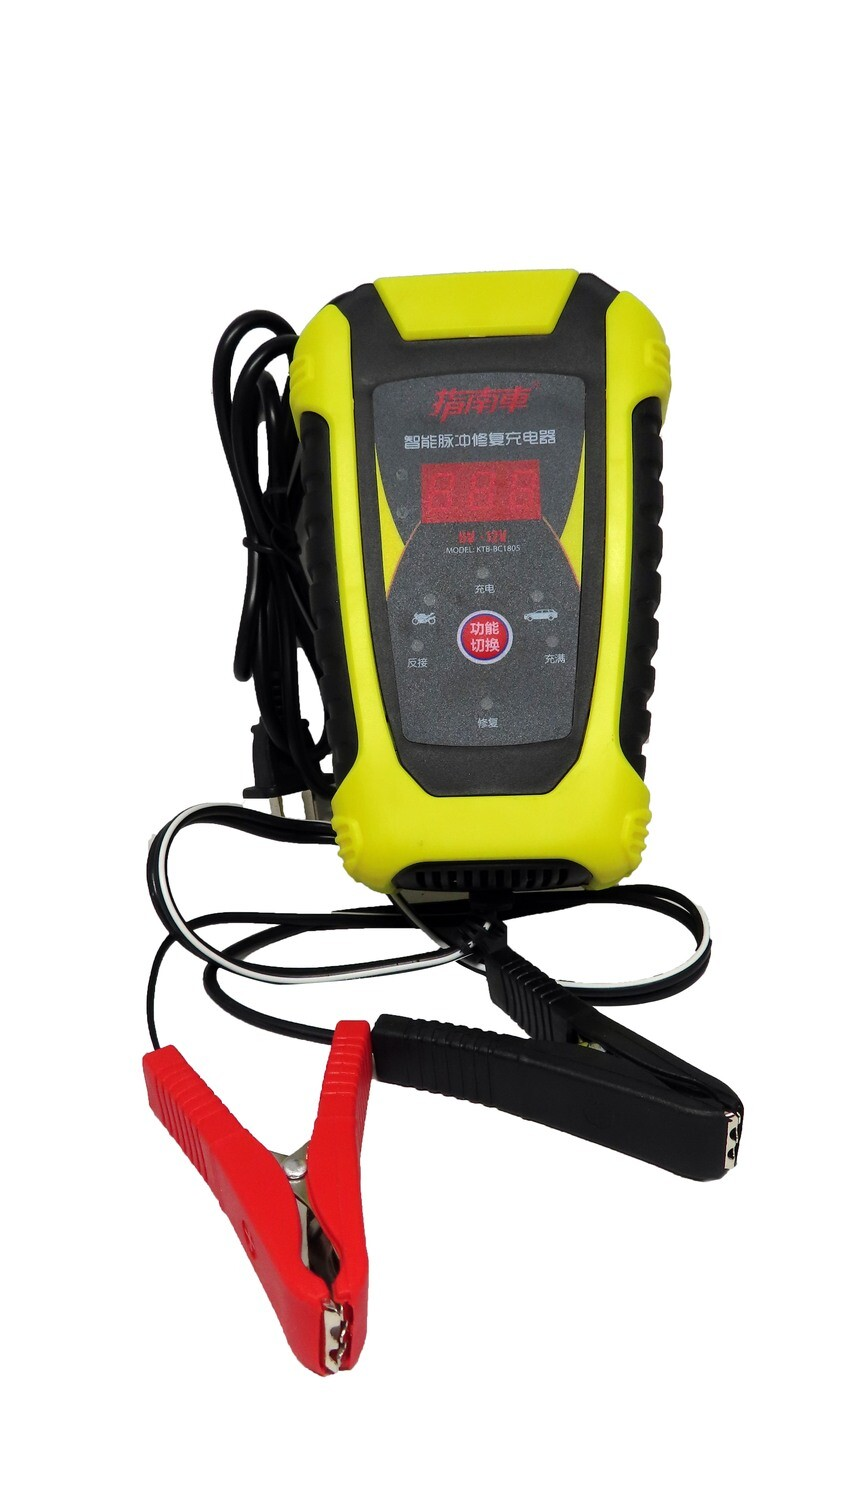 BATTERY CHARGER PORTABLE YELLOW